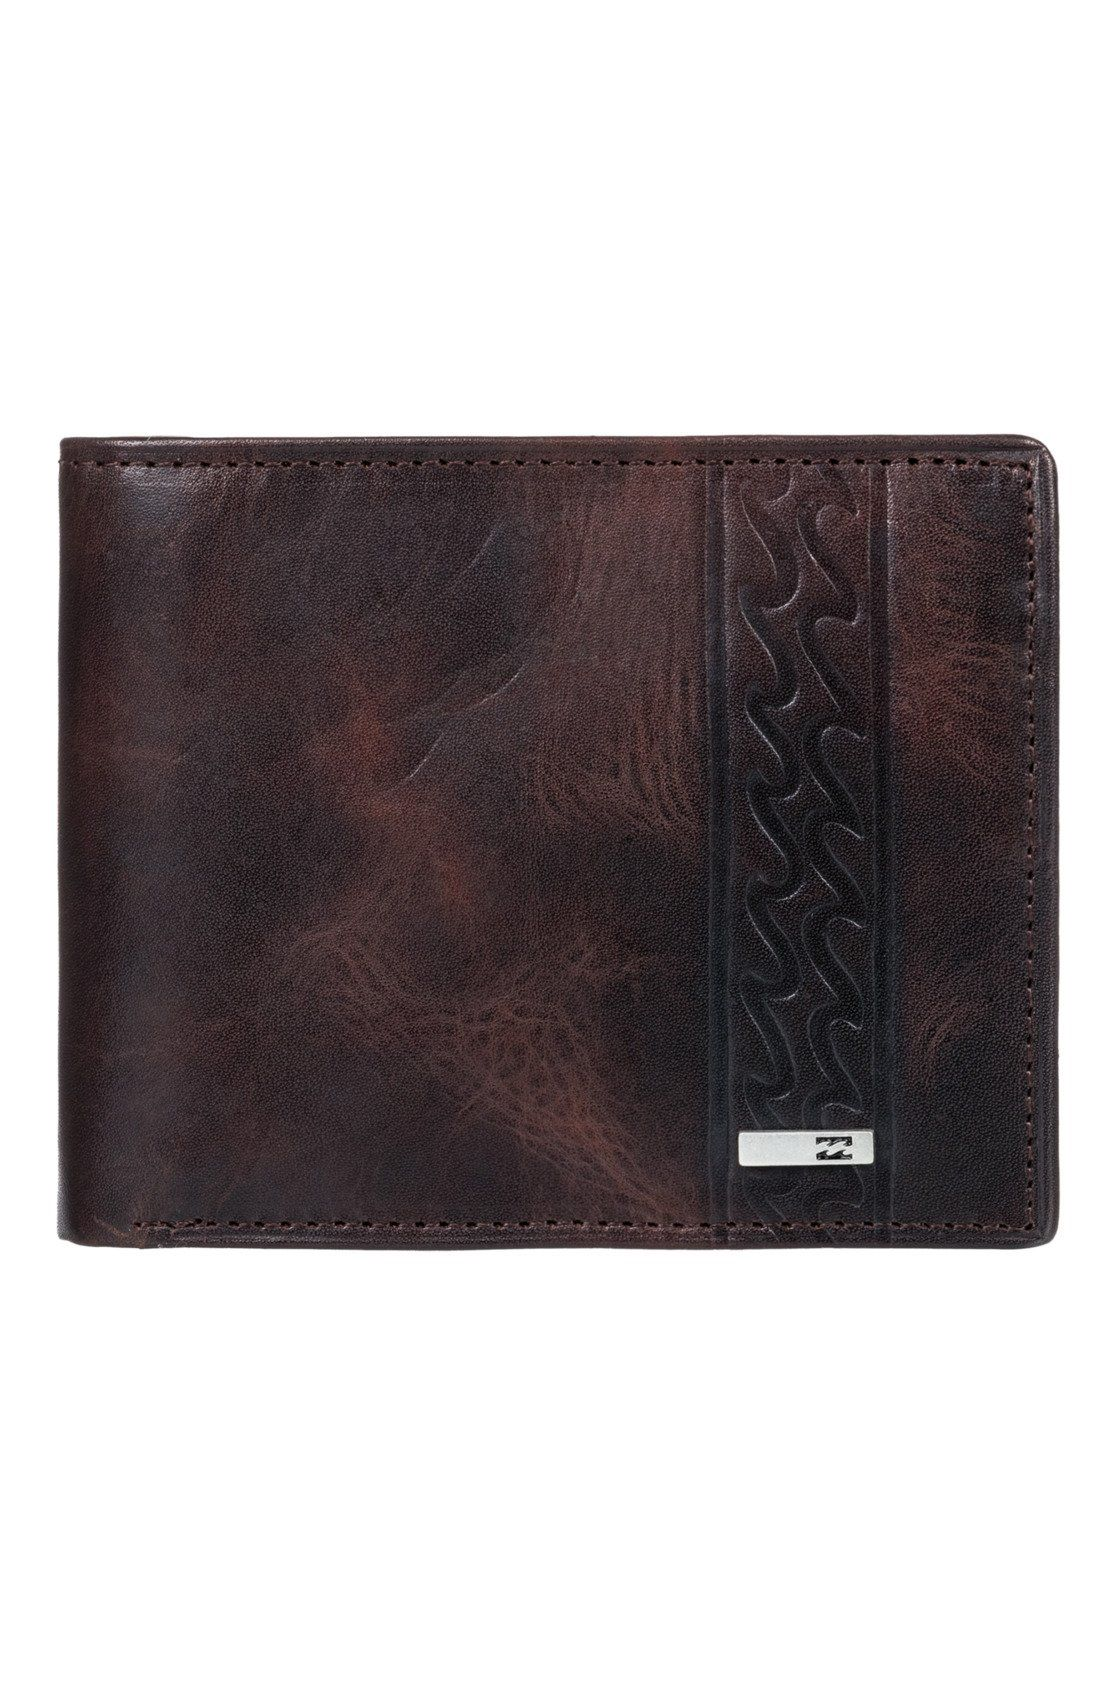 Billabong Leather Wallet DBAH LEATHER Chocolate